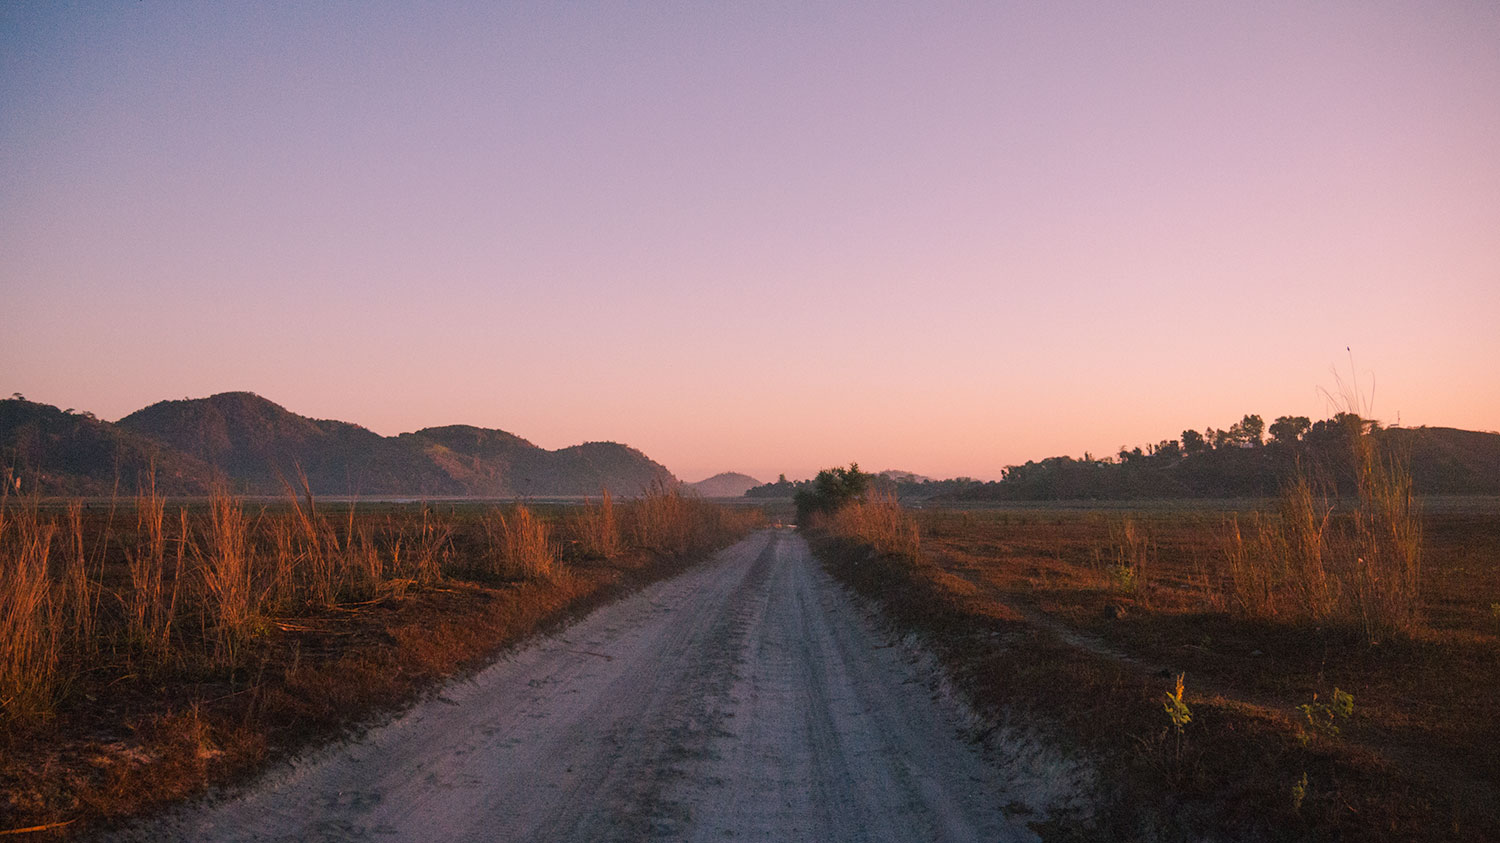 Sunrise on our way to Mount Pinatubo